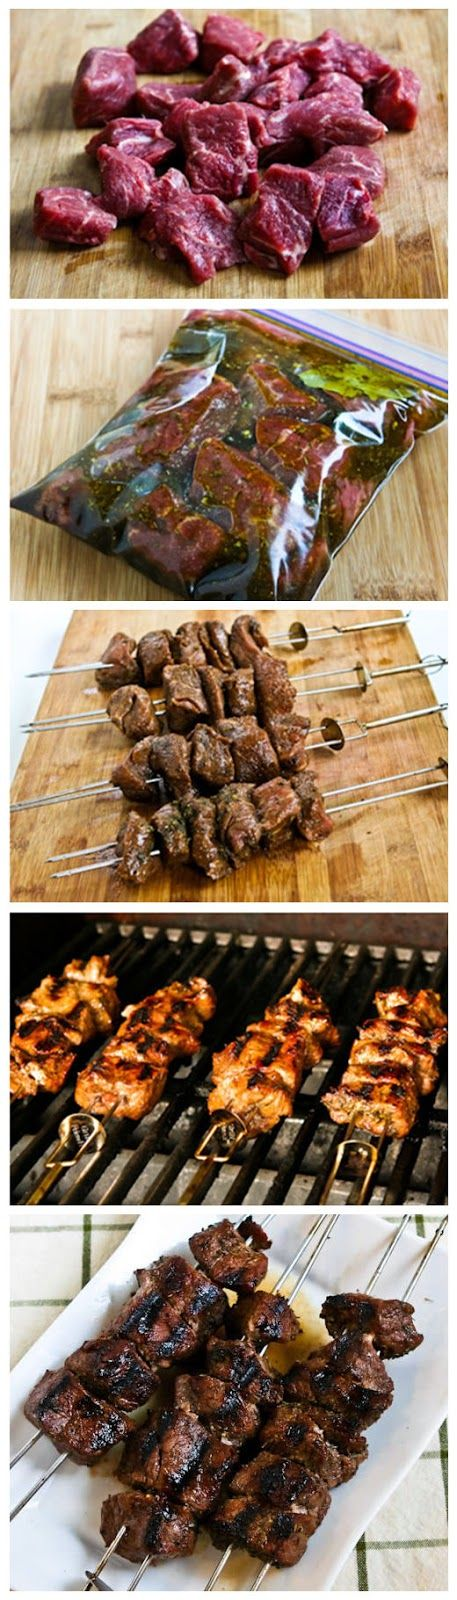 Marinated Beef Kabobs - Best Food Cloud | WHAT'S FOR DINNER | Pintere ...